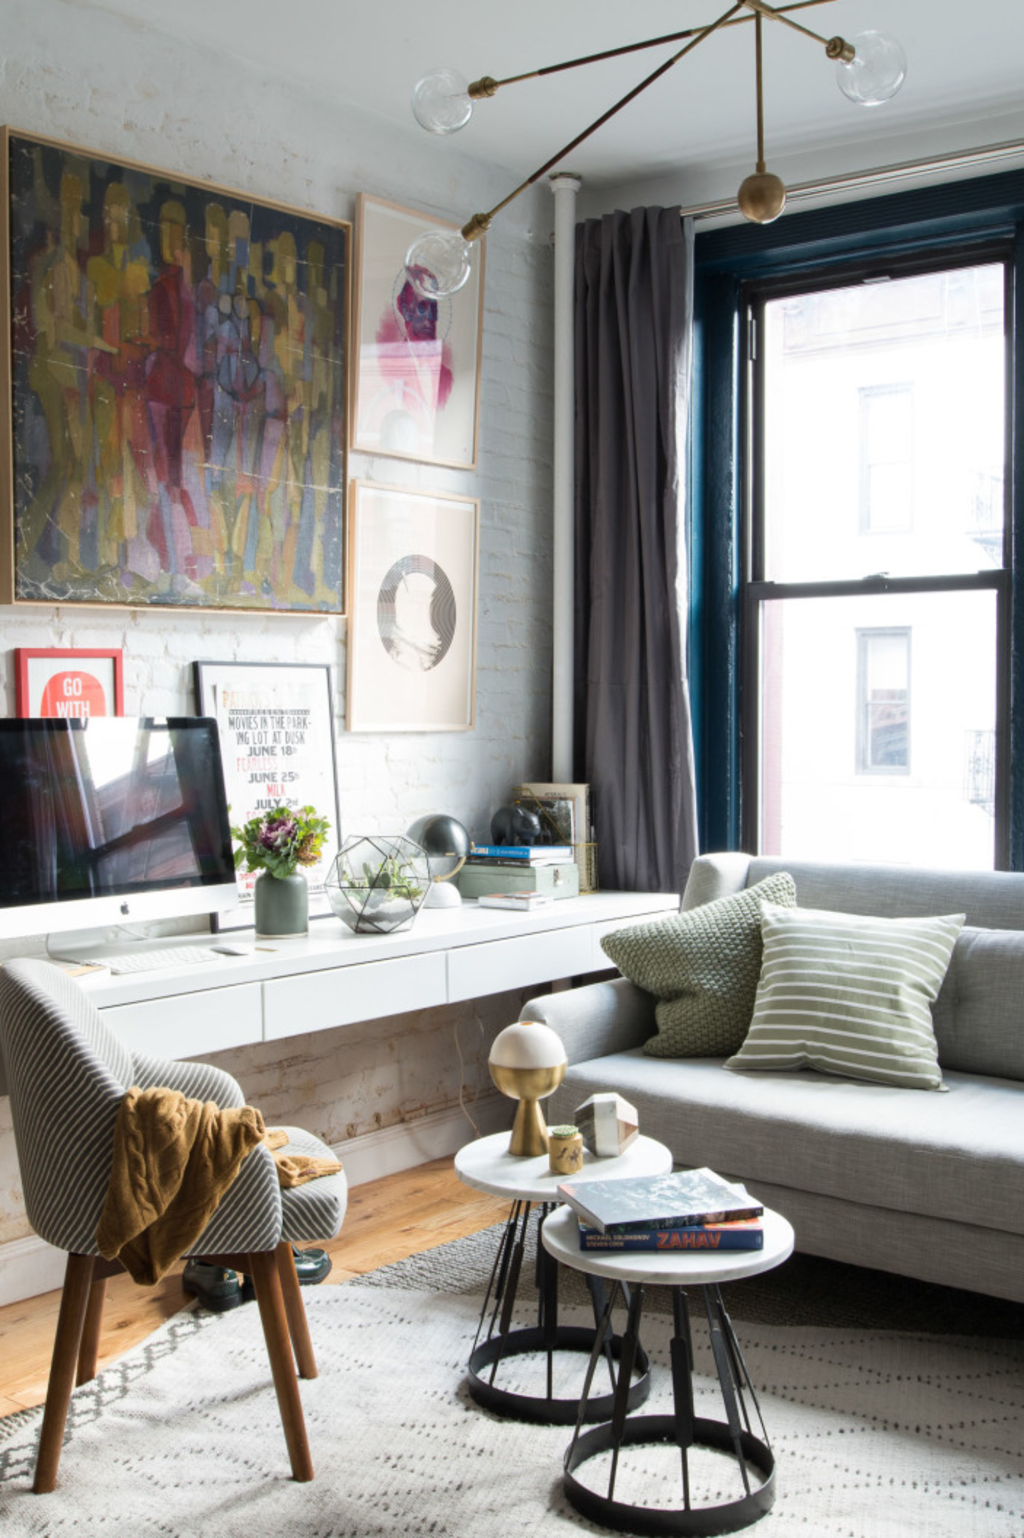 7 Ways To Fit A Workspace Into A Small Space Small Living Room Design Small Room Design Desk In Living Room